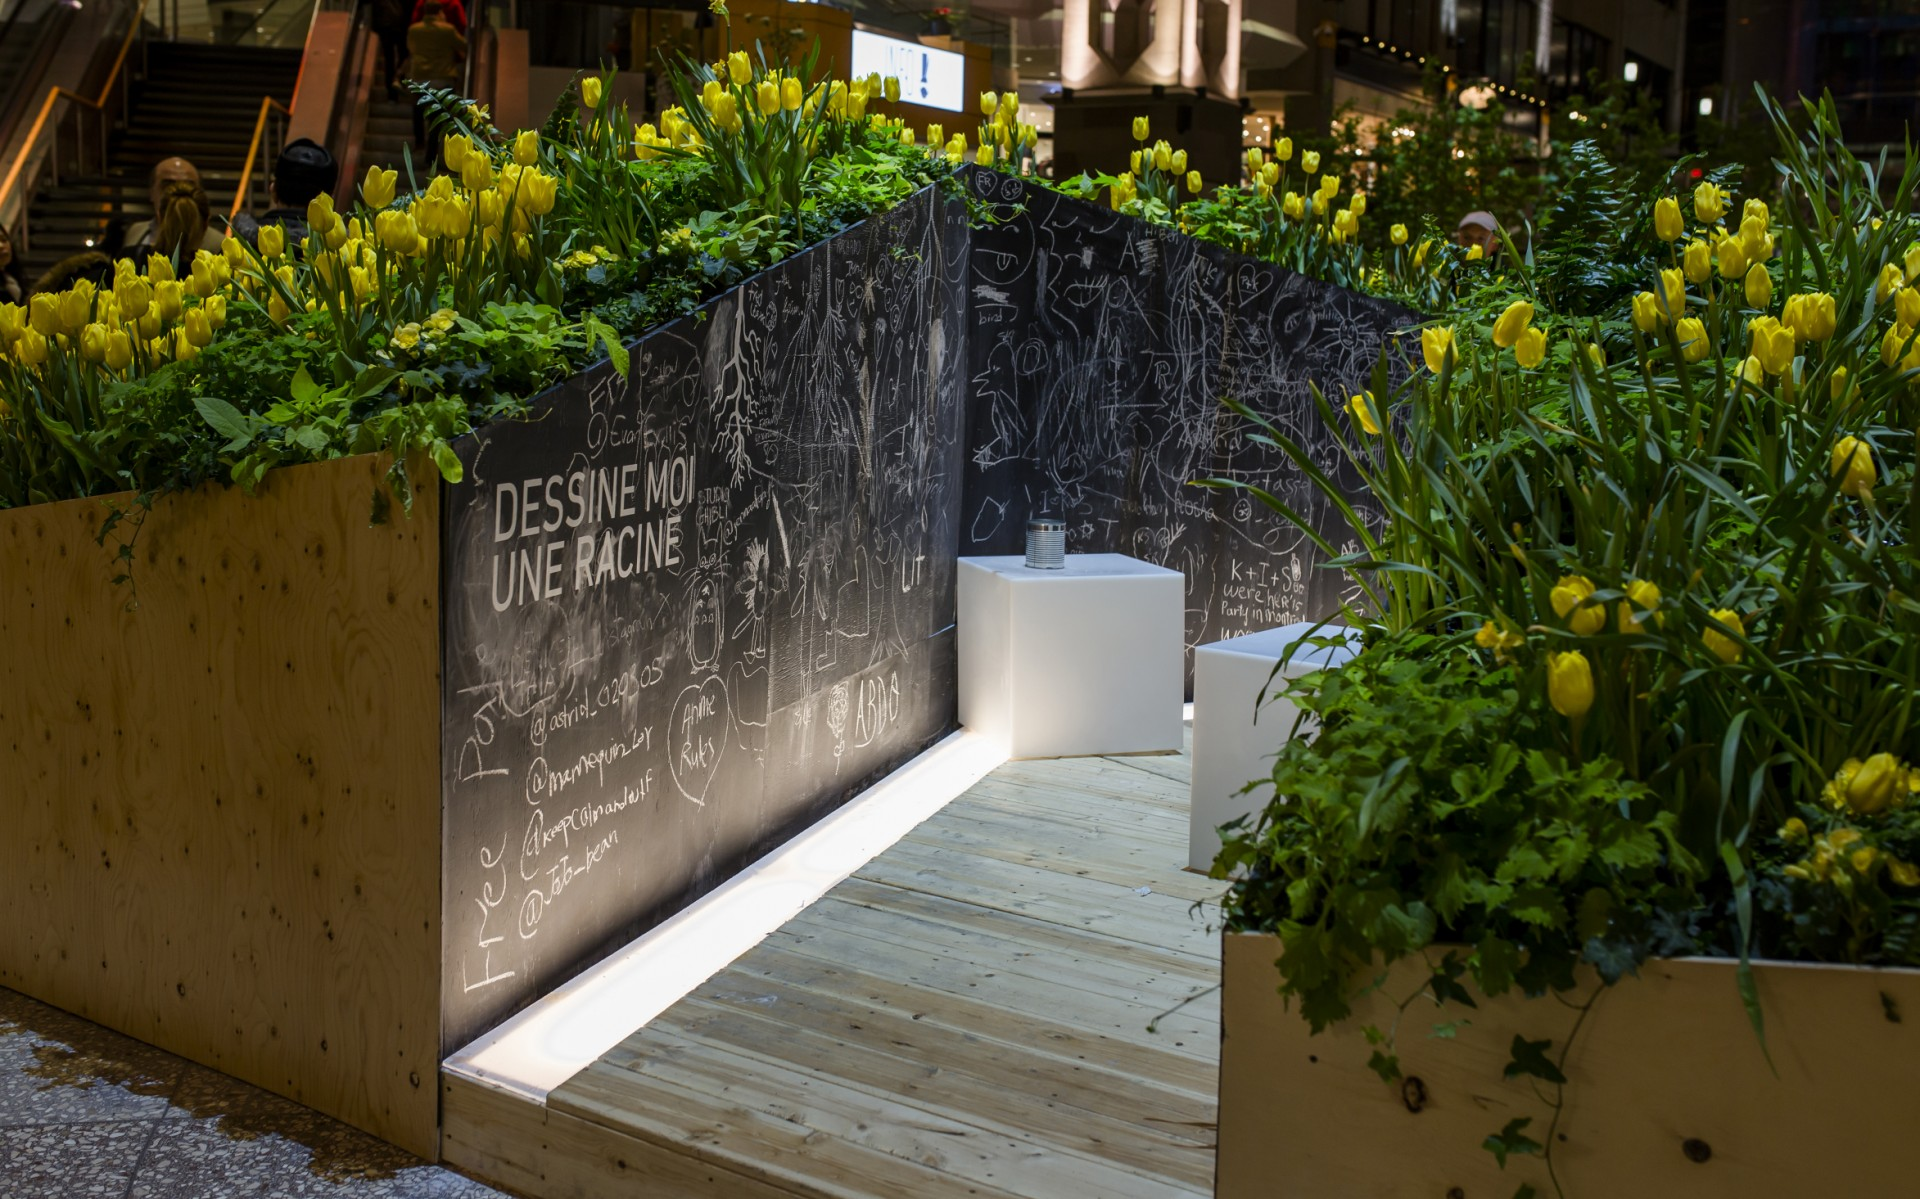 Lumenpulse provided outdoor LED luminaires for an exhibition of landscape architecture.